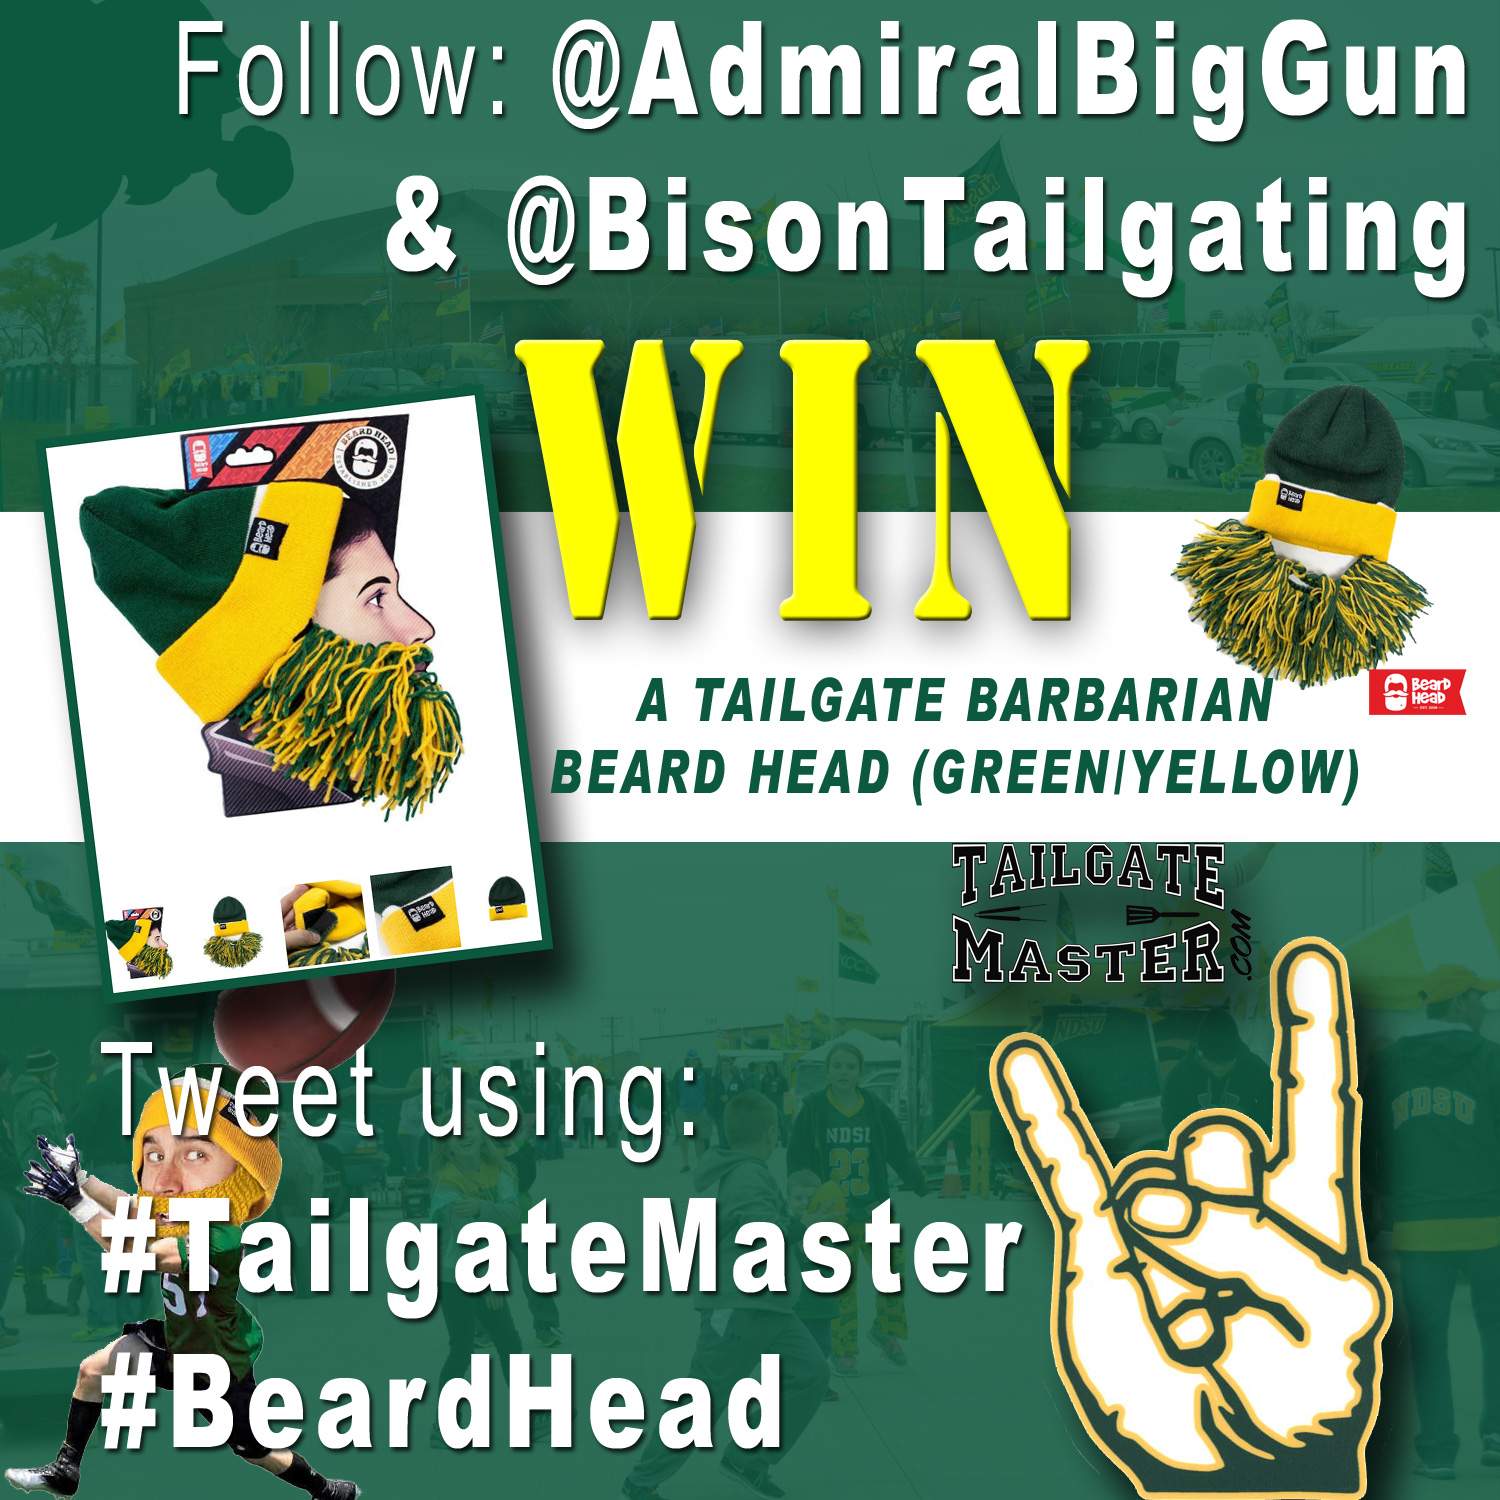 Use #TailgateMaster and #BeardHead for a chance to win